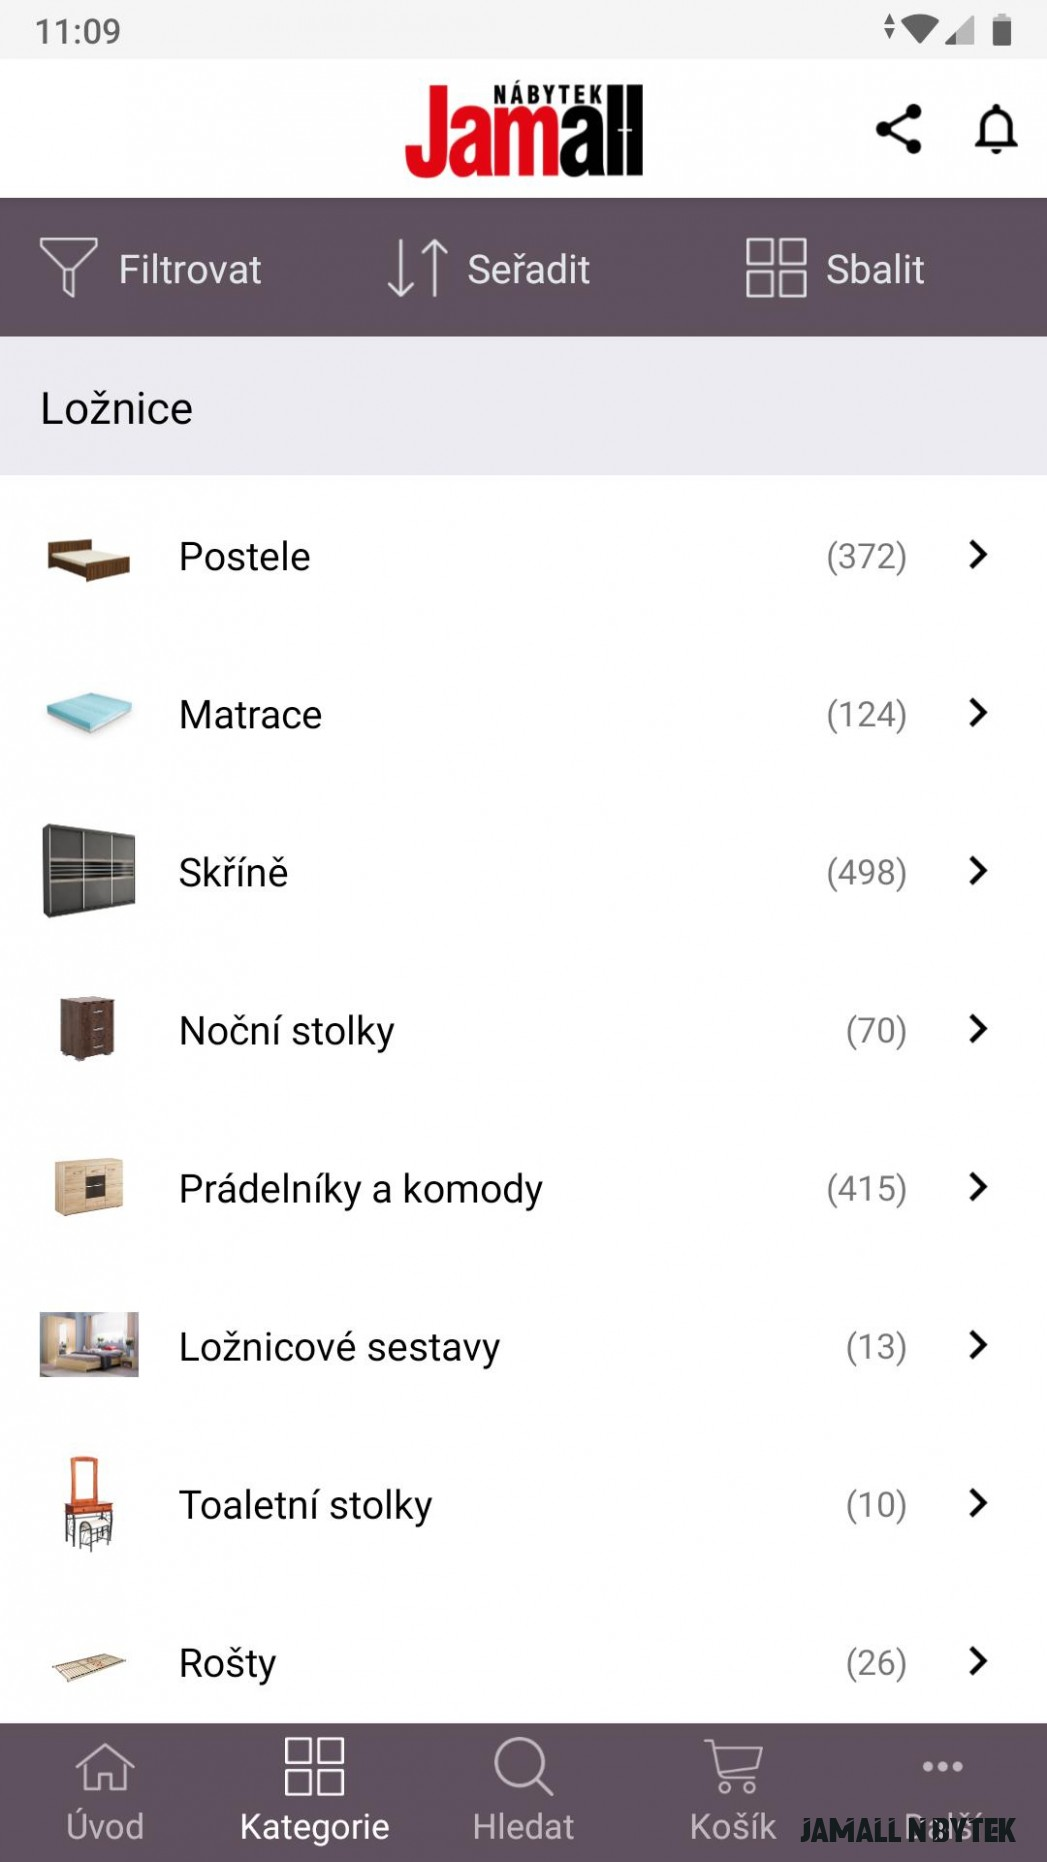 Nábytek Jamall for Android - APK Download